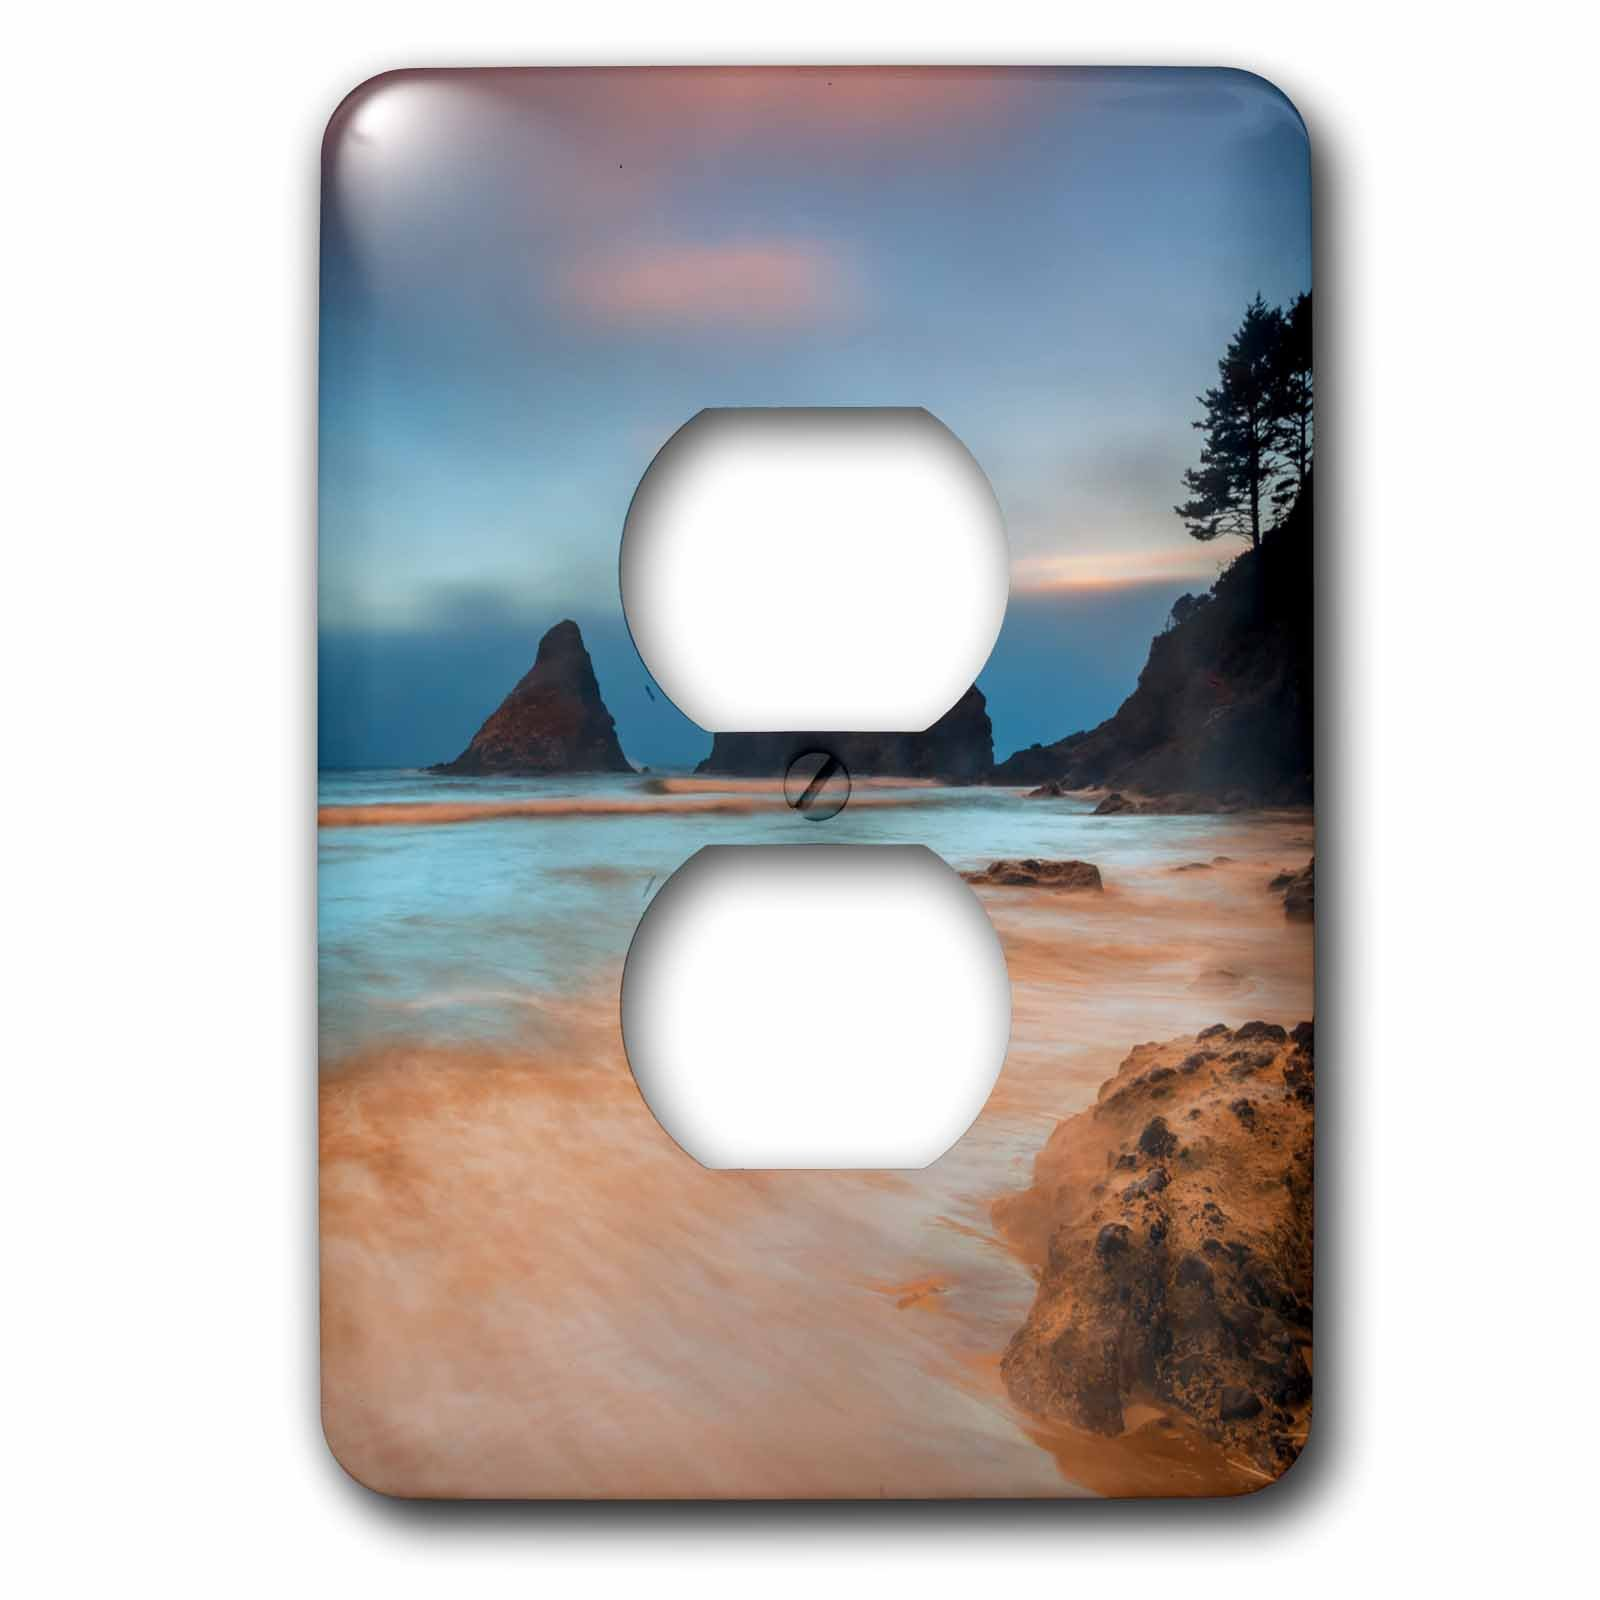 3dRose Danita Delimont - Beaches - USA, Oregon, Florence. Sunrise on Heceta Beach. - Light Switch Covers - 2 plug outlet cover (lsp_279278_6) by 3dRose